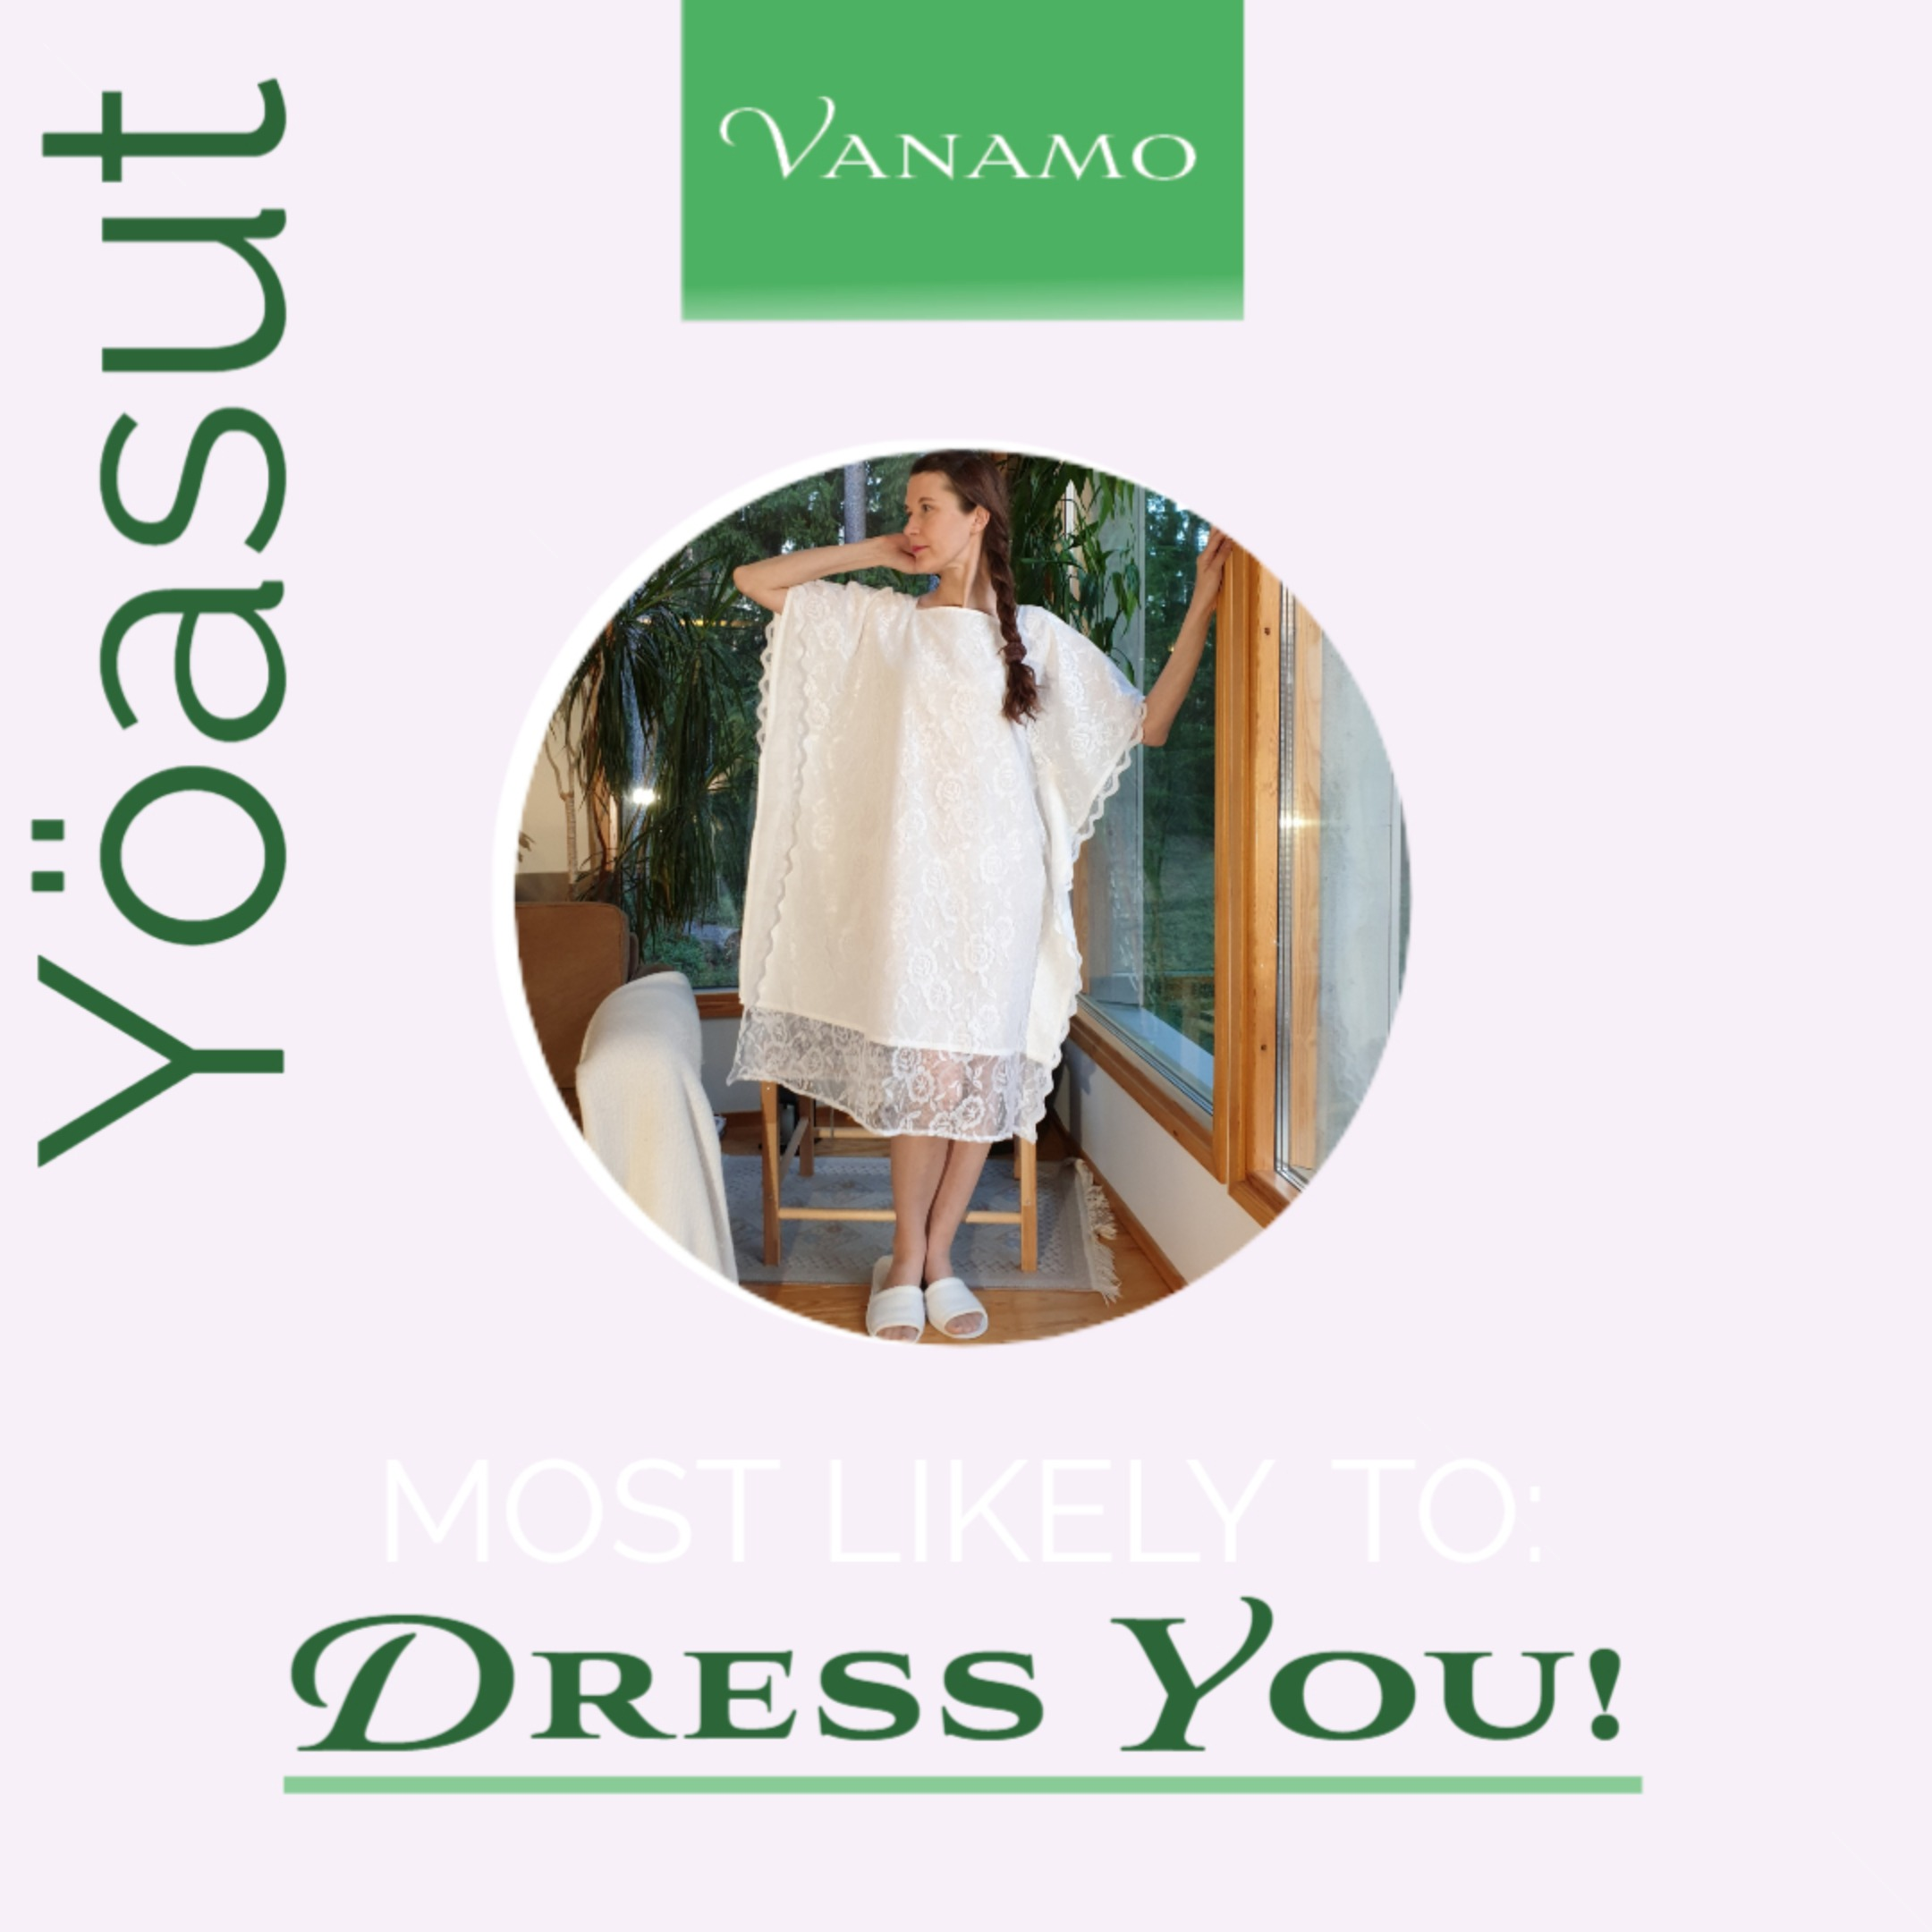 Vanamo - Night dresses